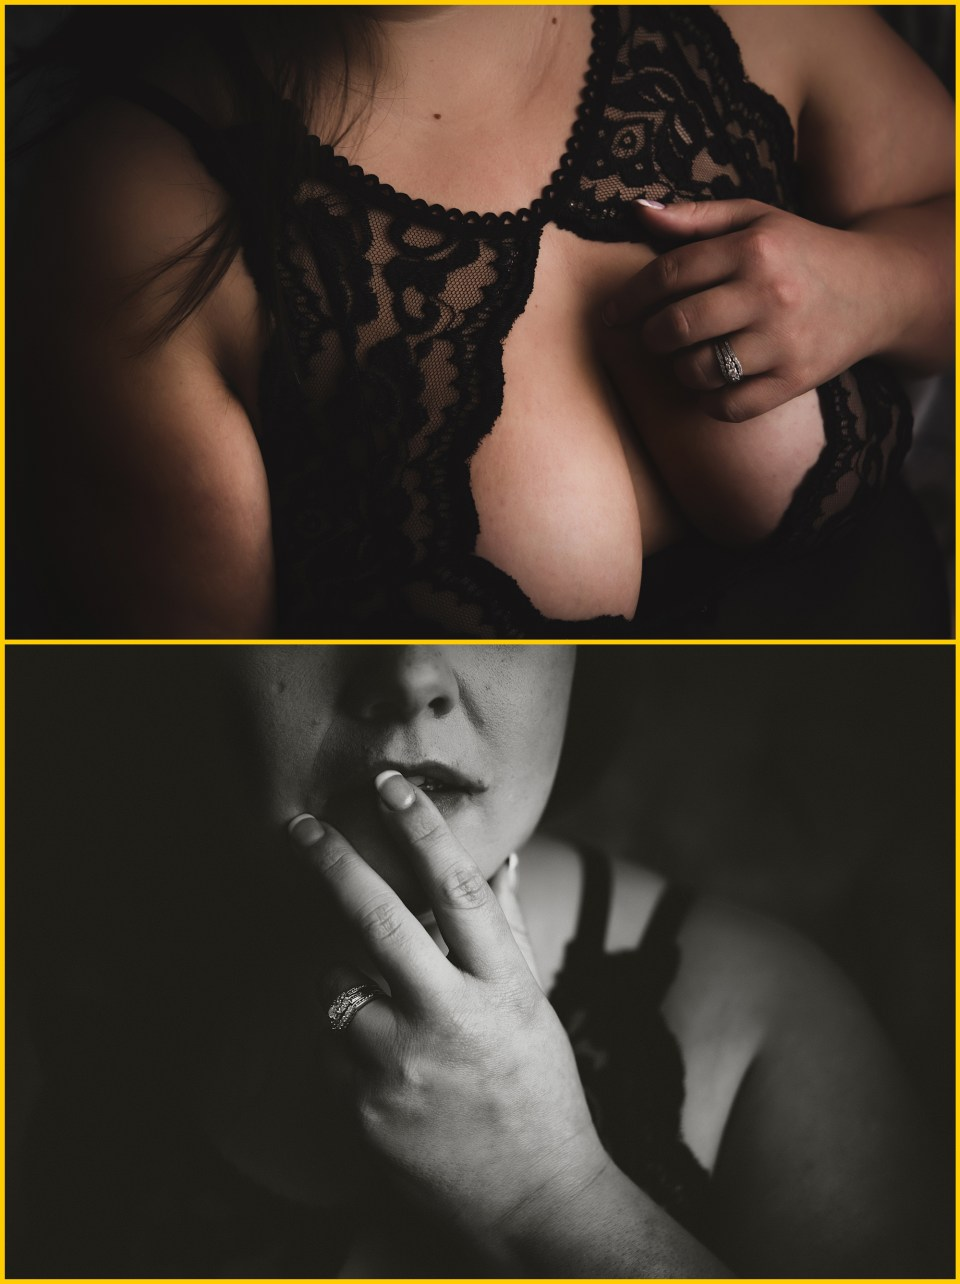 Diptych of woman during boudoir experience close-up of breasts with hand holding lingerie, black and white image close-up of mouth with hand placed over lips